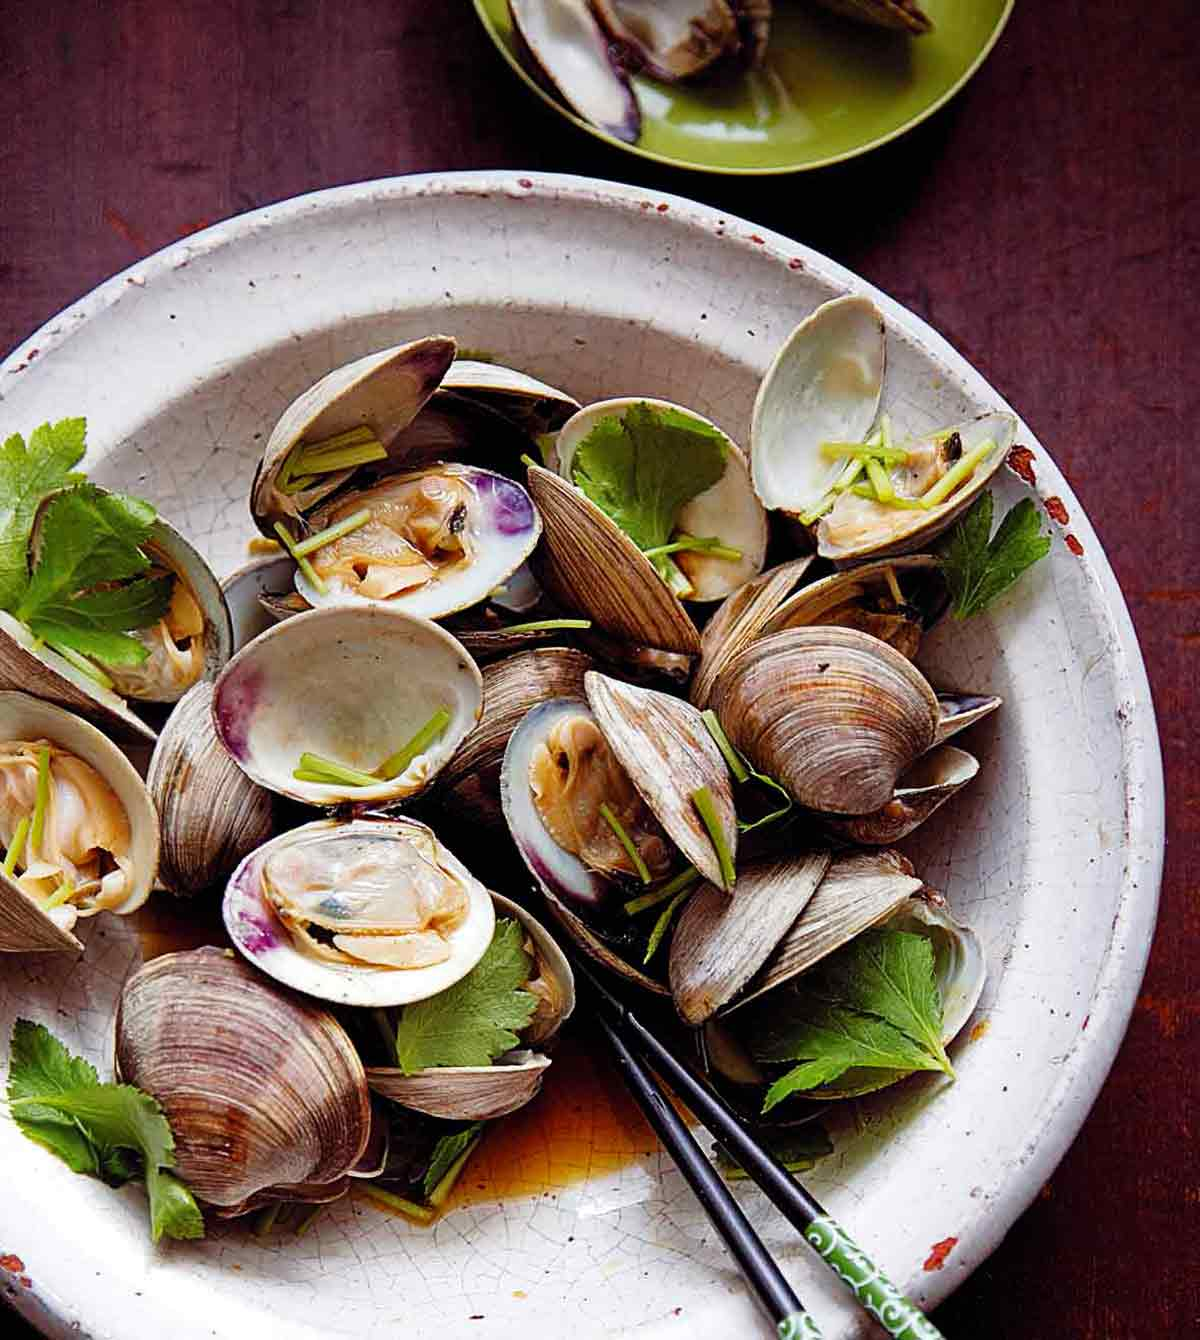 Bowl of grilled littleneck clams with soy sauce, cilantro leaves, and chopsticks